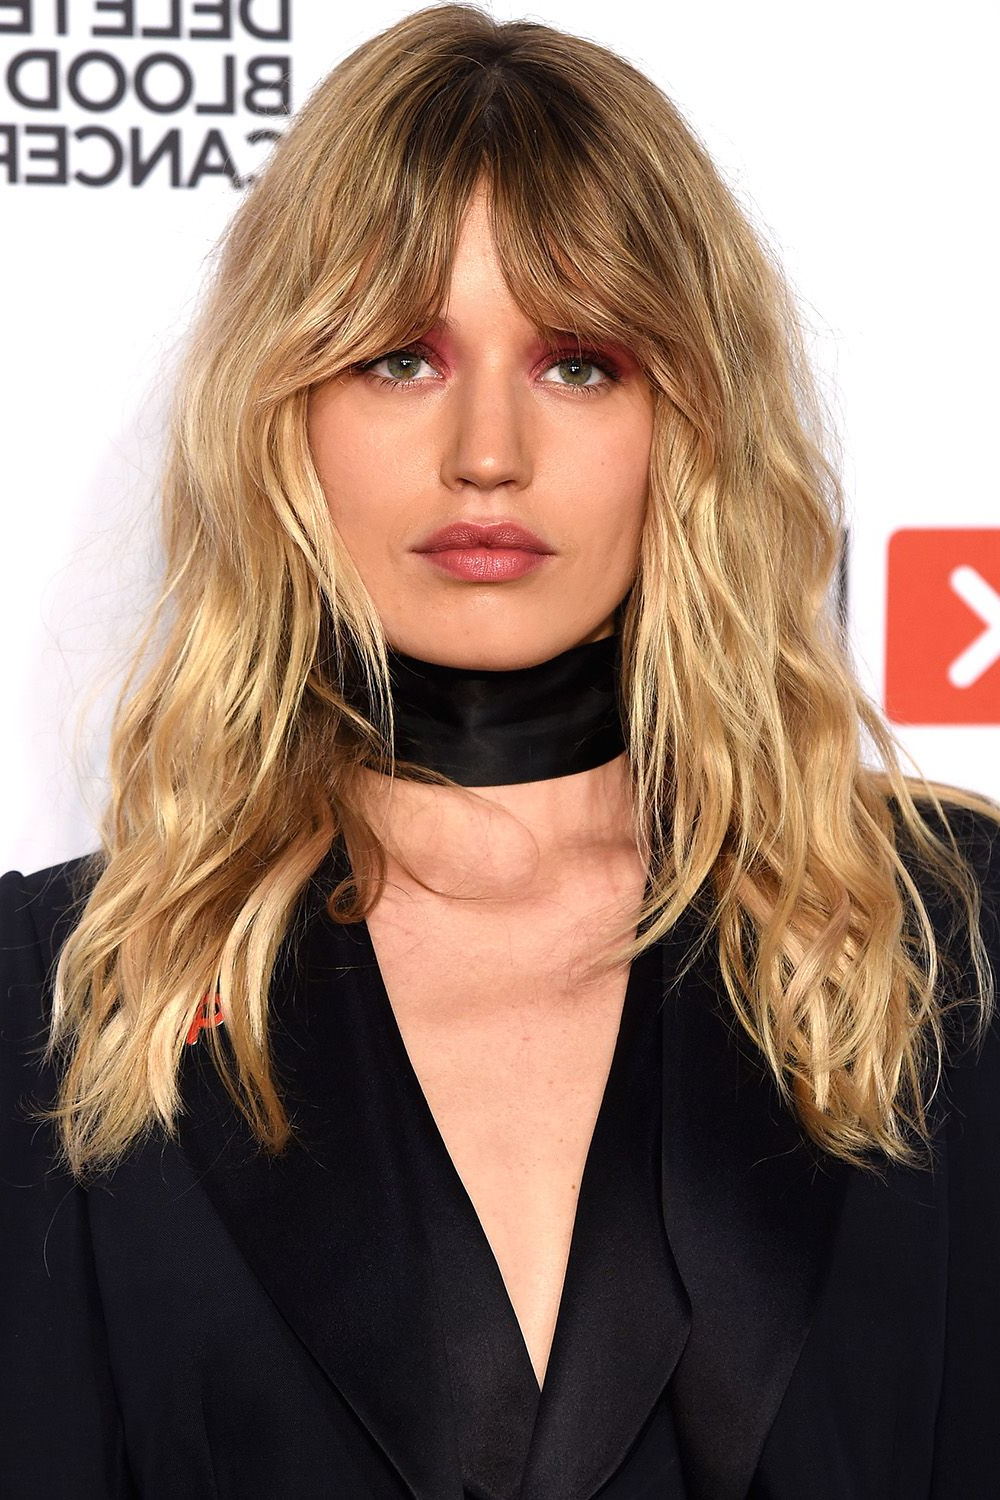 40 Best Medium Hairstyles – Celebrities With Shoulder Length Haircuts Inside Most Recent Medium Haircuts For Celebrities (Gallery 2 of 20)